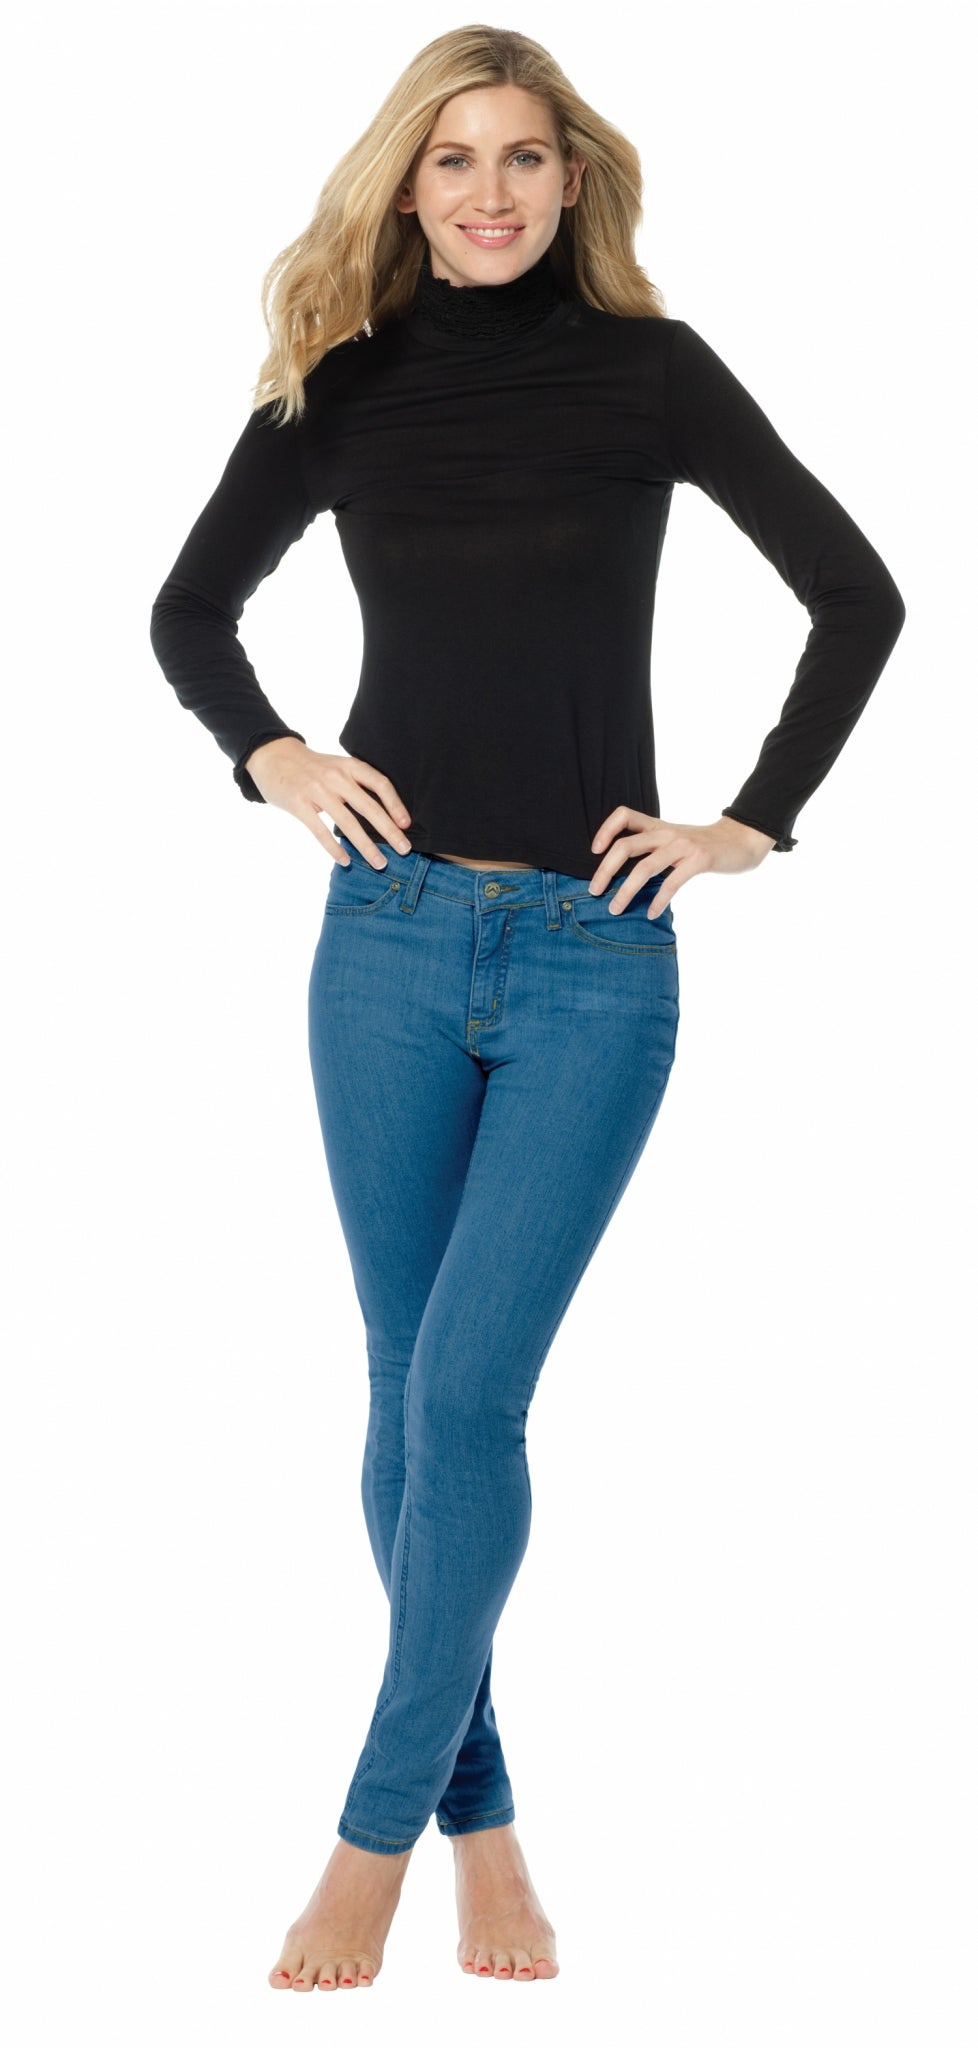 Gina Stonewash Blue Elite Wizard Jeans skinny cut and regular rise